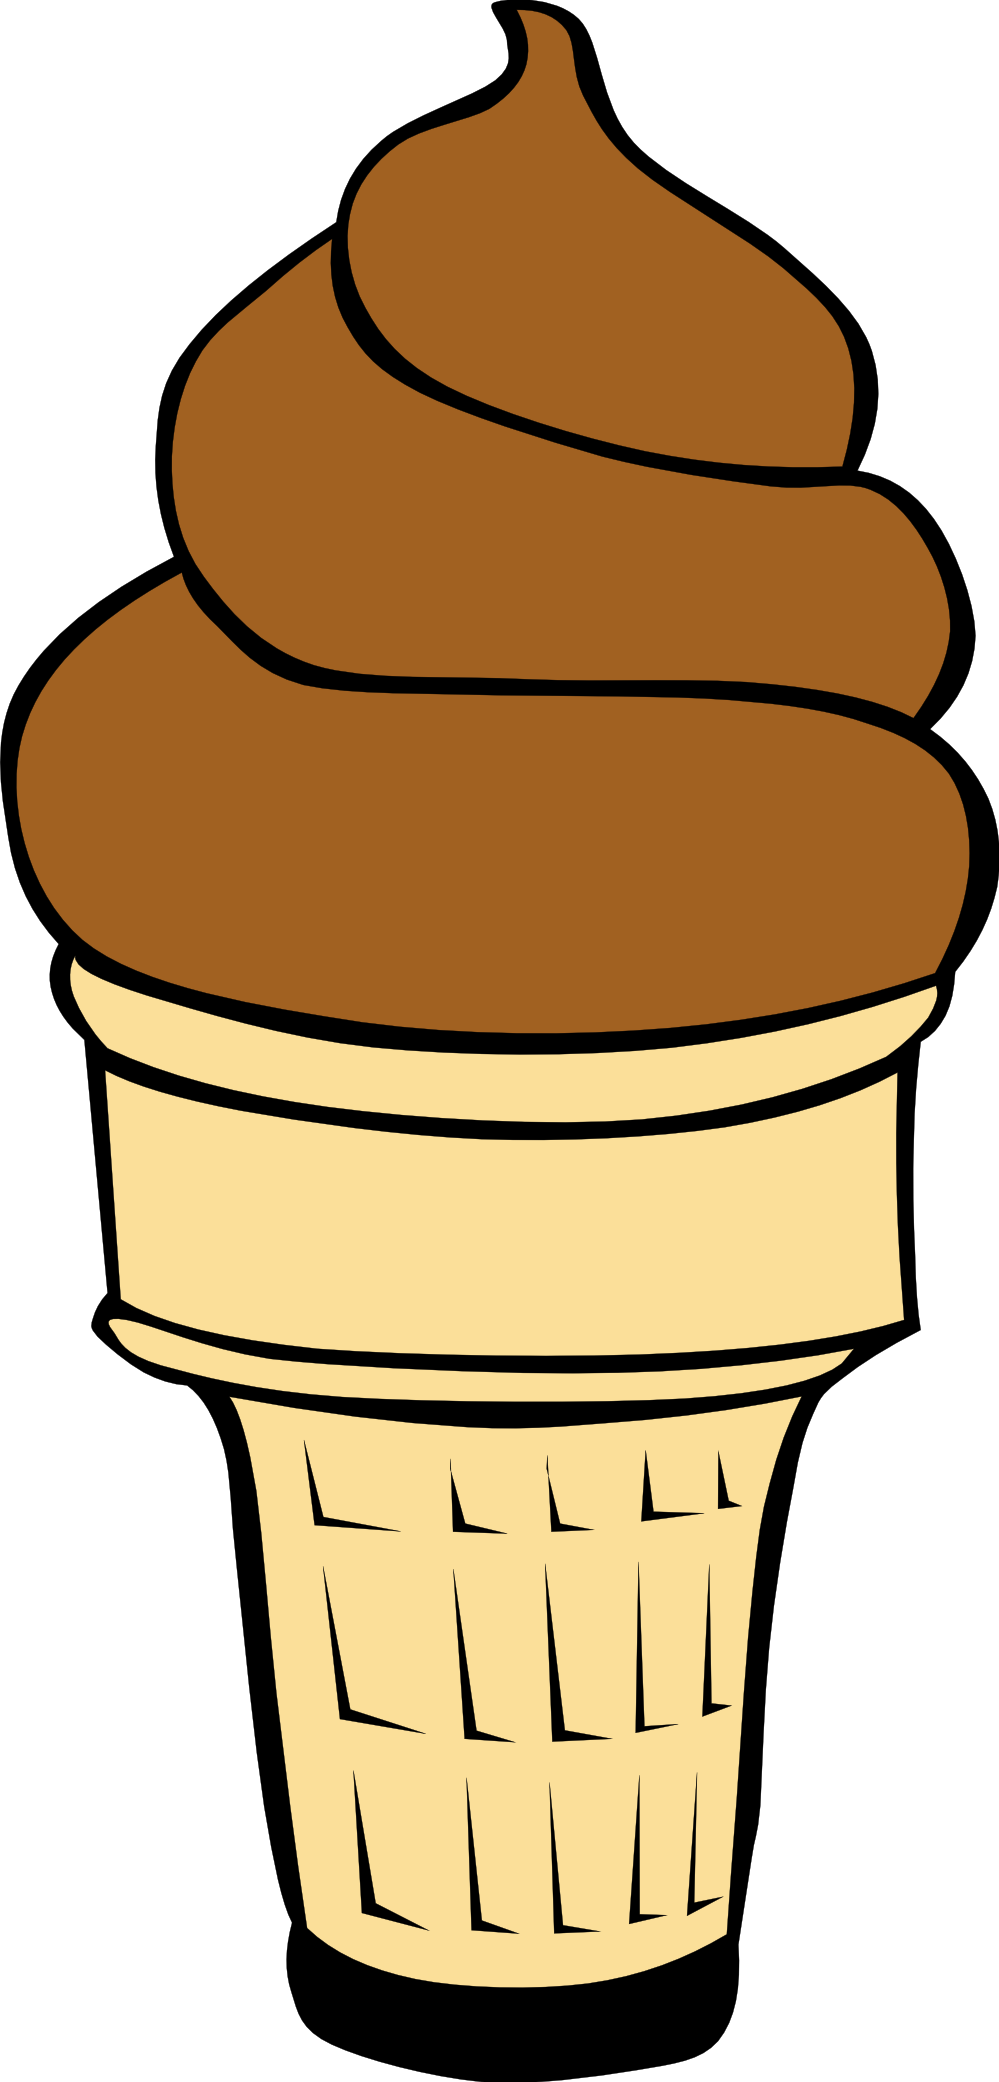 Cake cone clipart transparent library Ice cream cone clipart free images 7 - ClipartPost transparent library